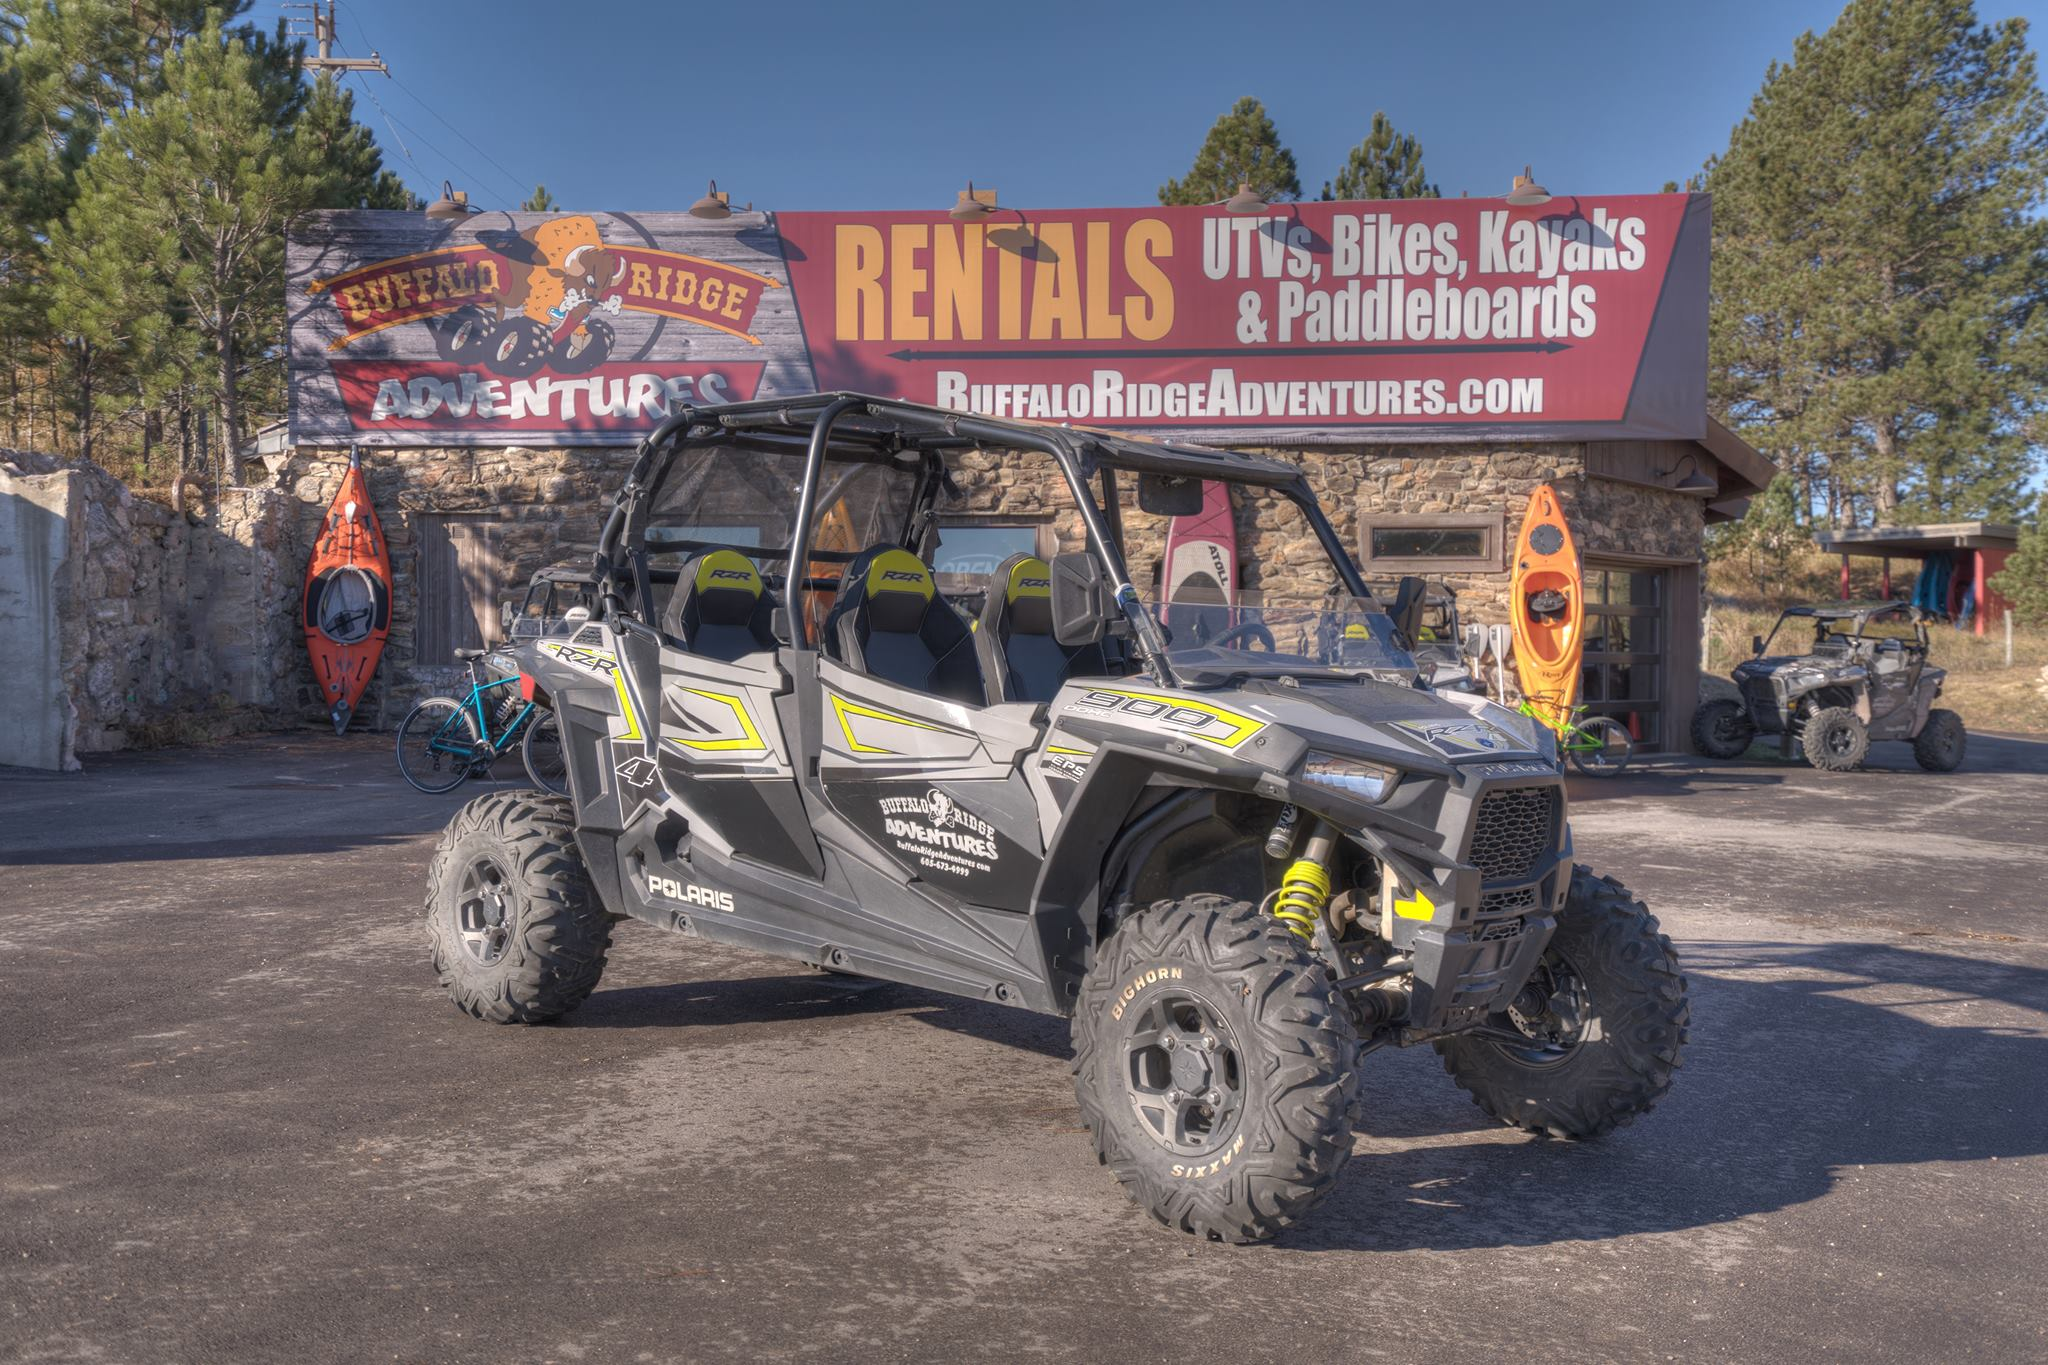 Buffalo Ridge Adventures Rentals